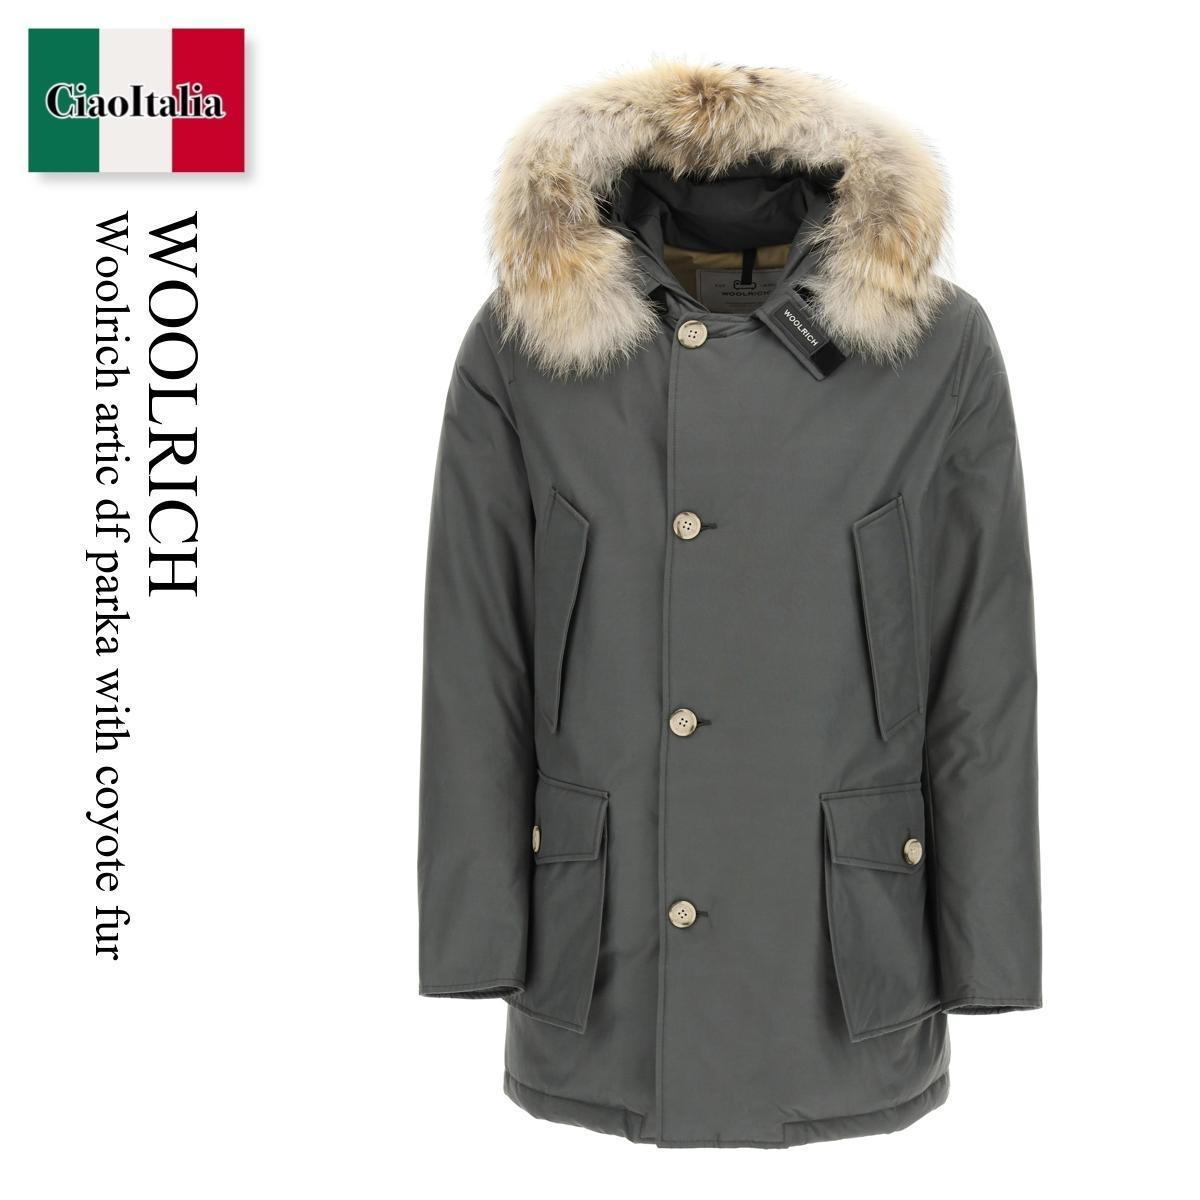 Woolrich artic df parka with coyote fur (WOOLRICH/ブルゾン) WOOLRICH ARTIC DF PARKA WITH COYOTE FUR  CFWOOU0482 MRUT0001  CFWOOU0482 MRUT0001 GSH